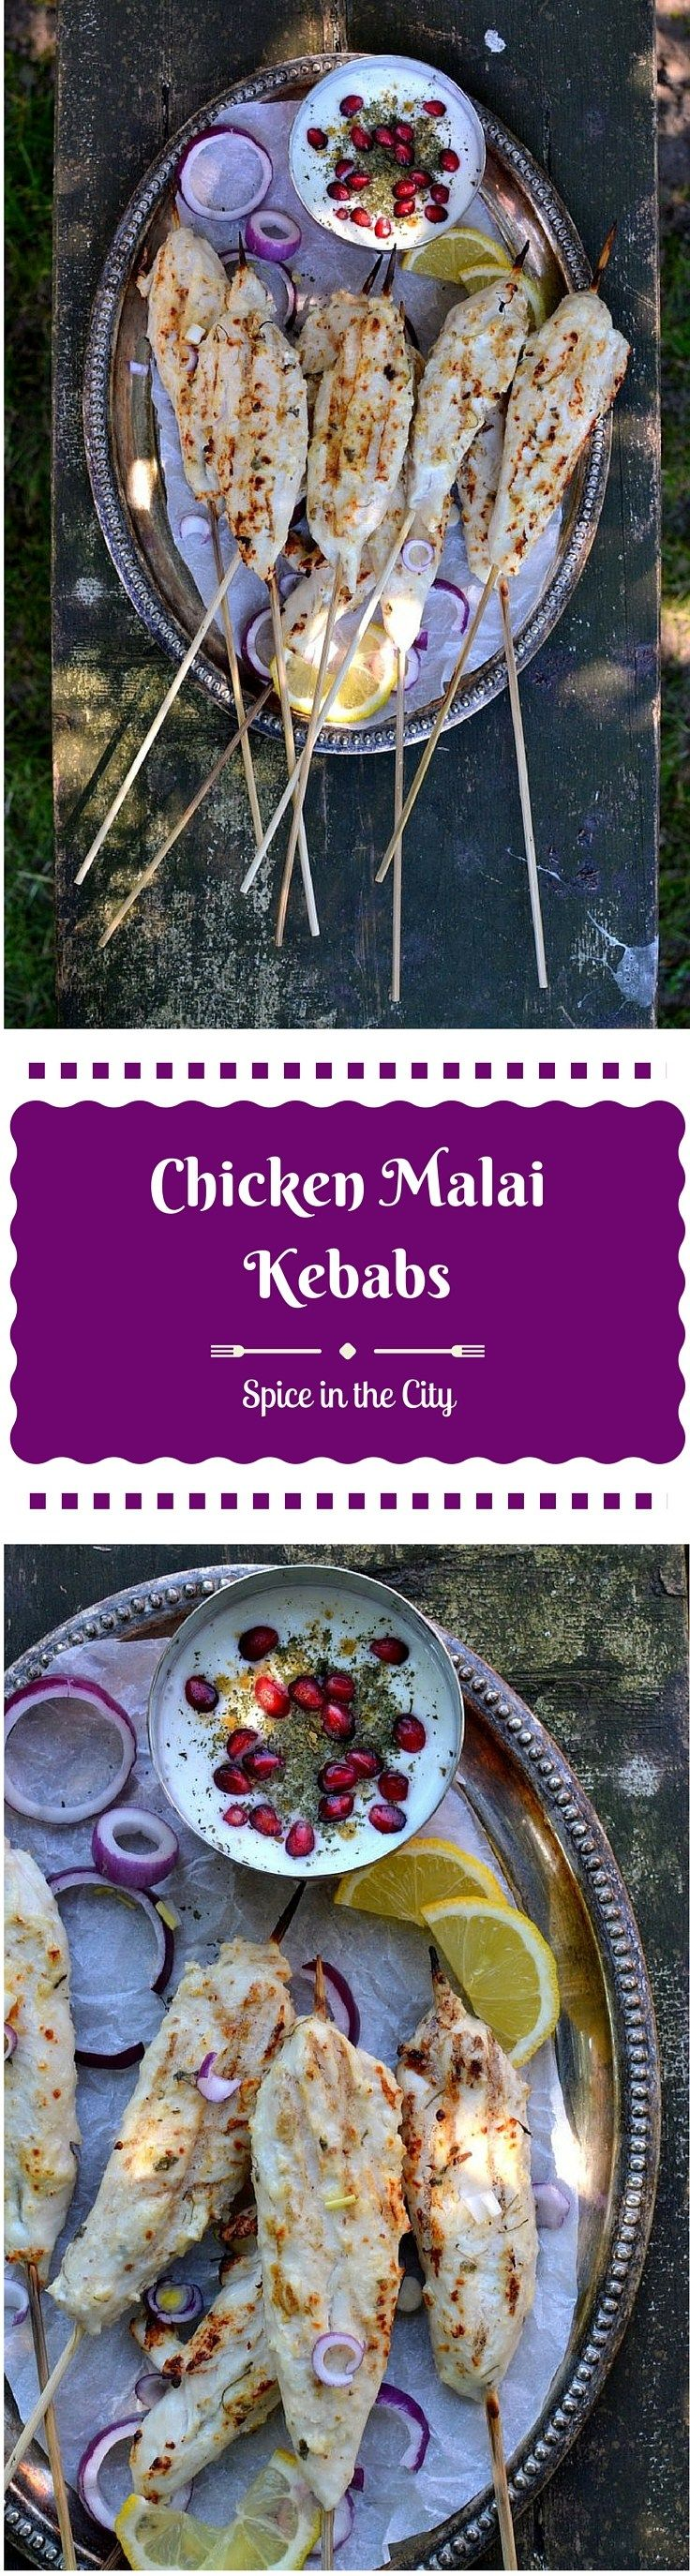 Chicken Malai Kebabs: Kick-off Grilling Season with these wonderfully flavorful, lightly spiced Chicken Malai Kebabs, marinated with Cream & Cheese    Spice in the City